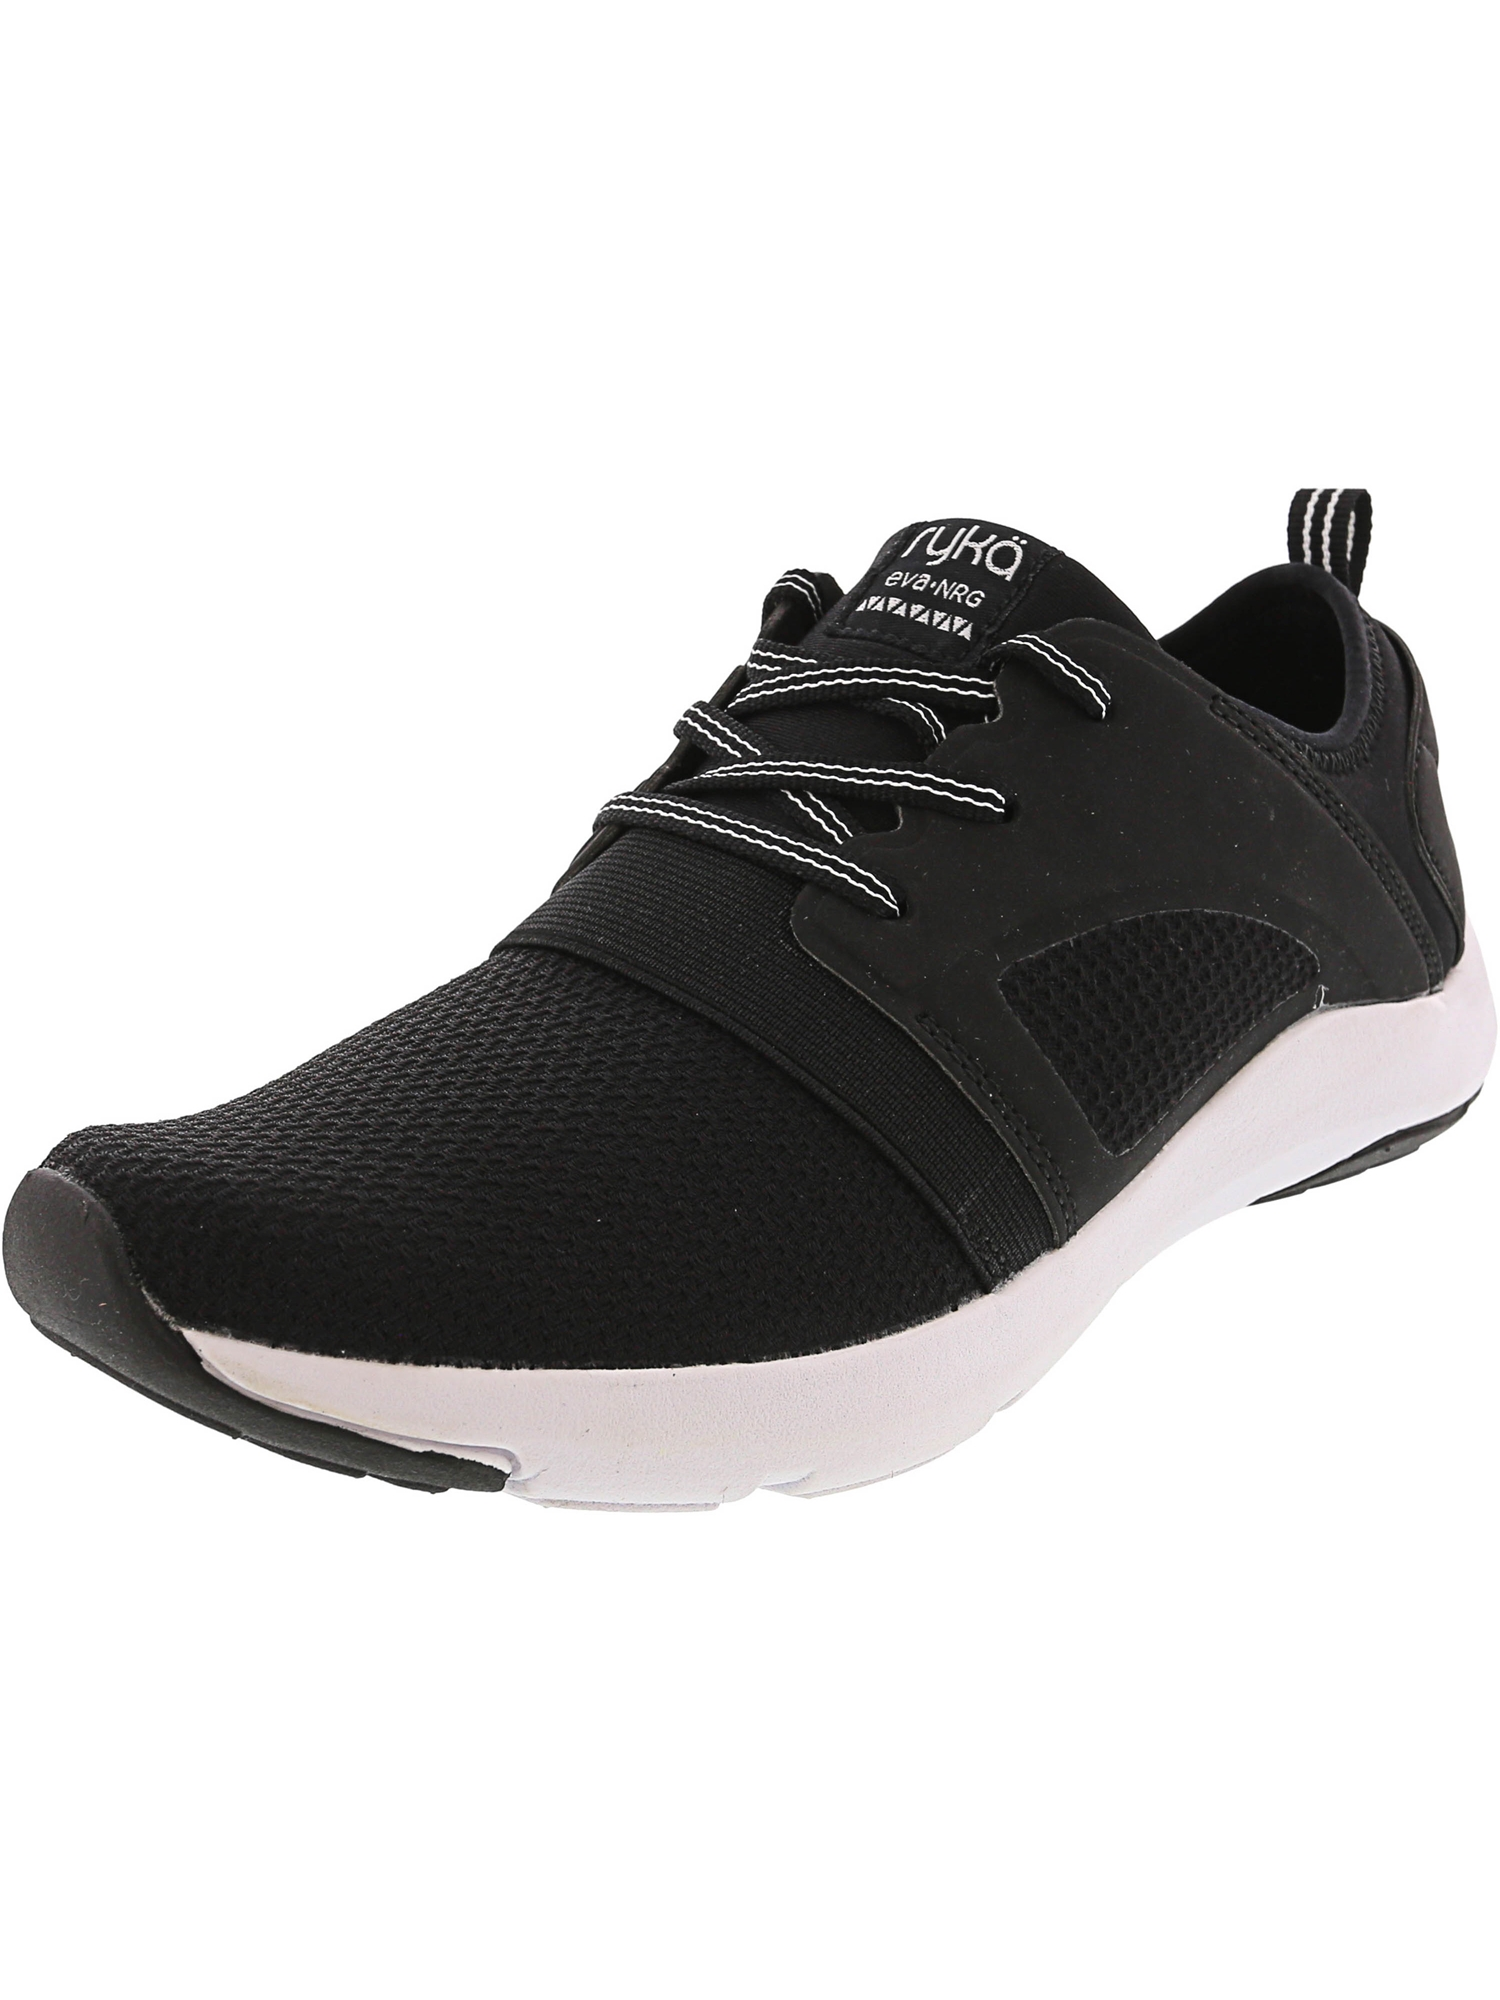 Ryka Womens Eva Mrg Low Top Lace Up Running Sneaker